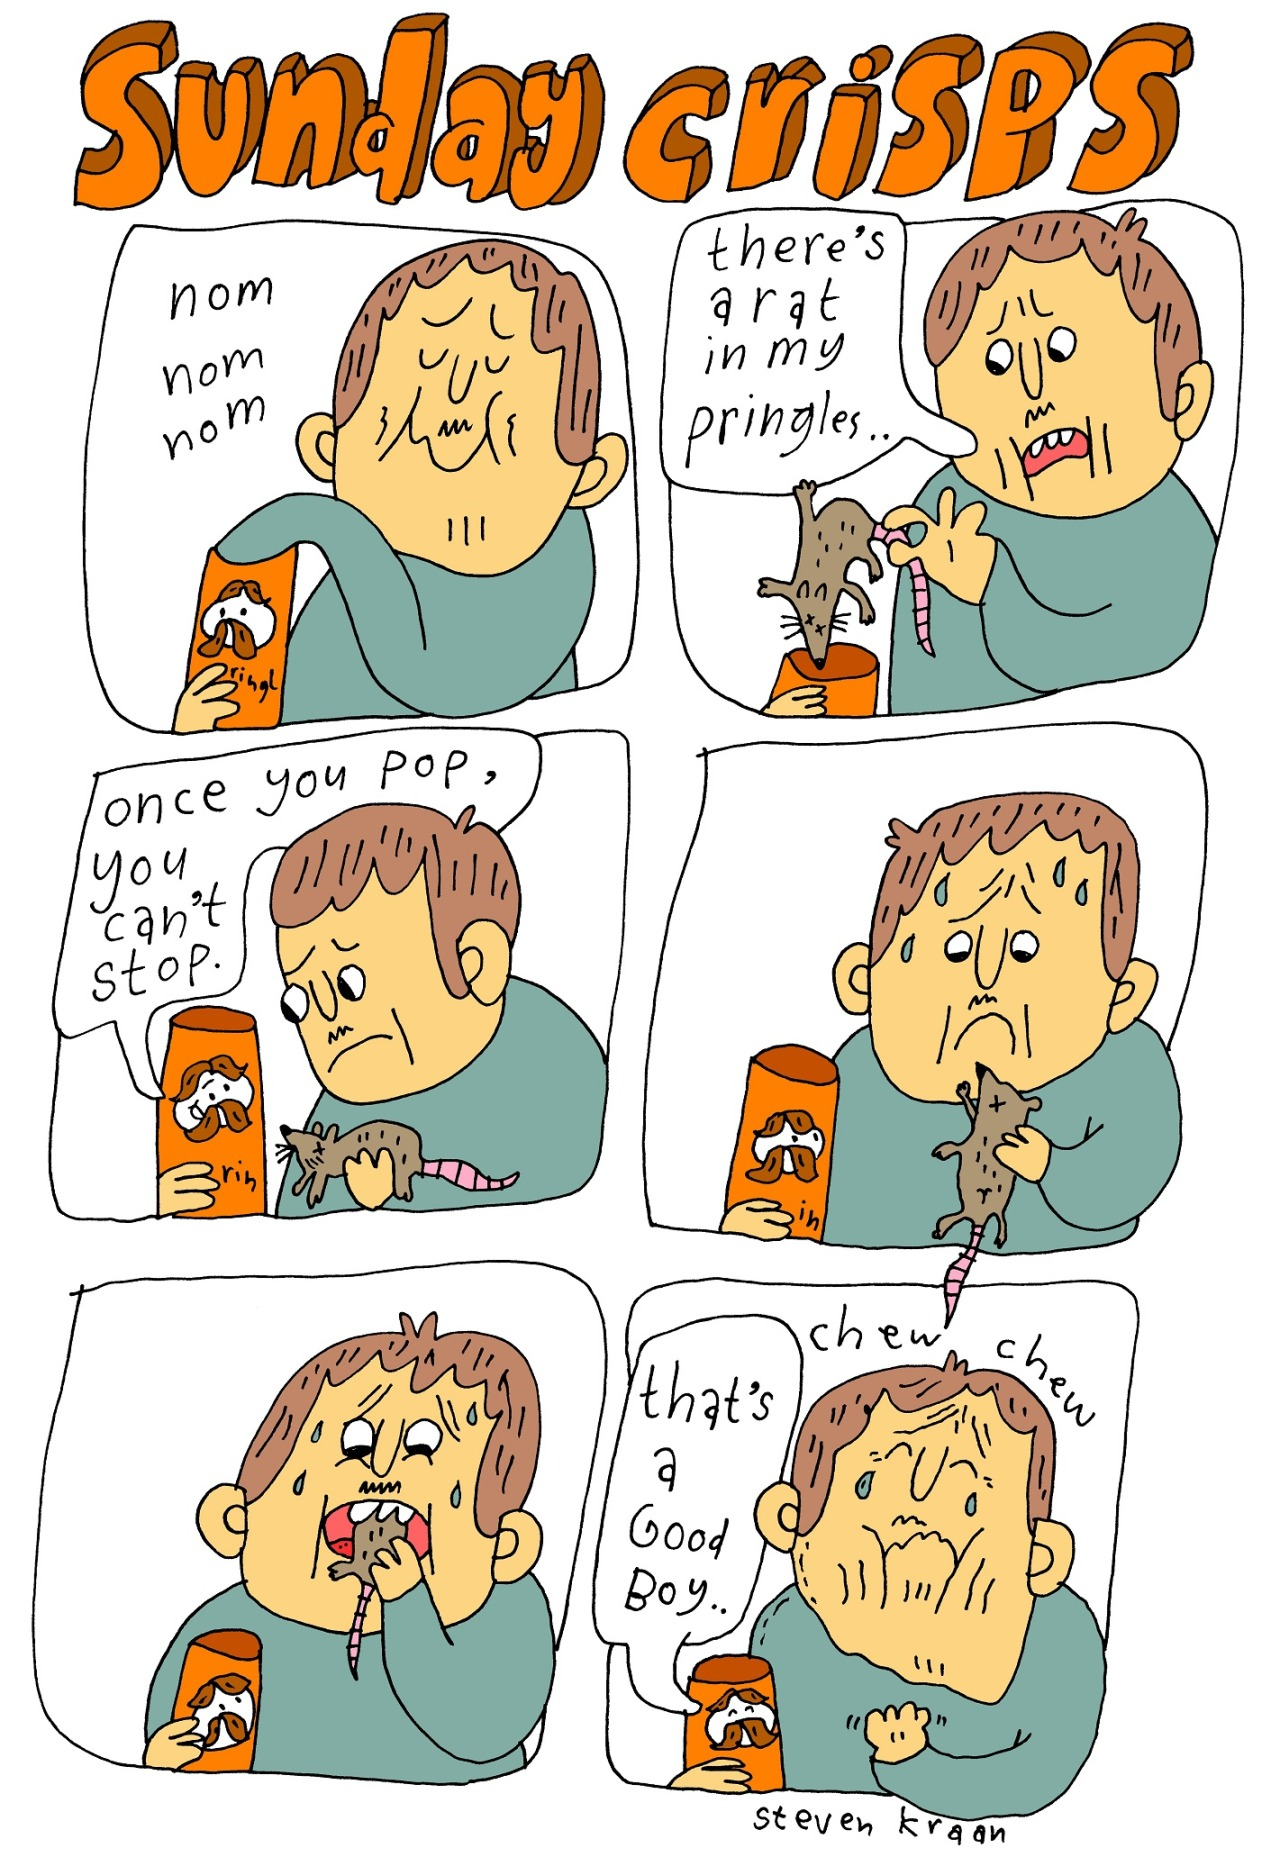 "eatsleepdraw:  ""sunday crisps"" For more comics, please visit one of my pages ^__^ http://www.facebook.com/drawingdaily or http://stevenkraandrawingdaily.tumblr.com/  hahahaaha"